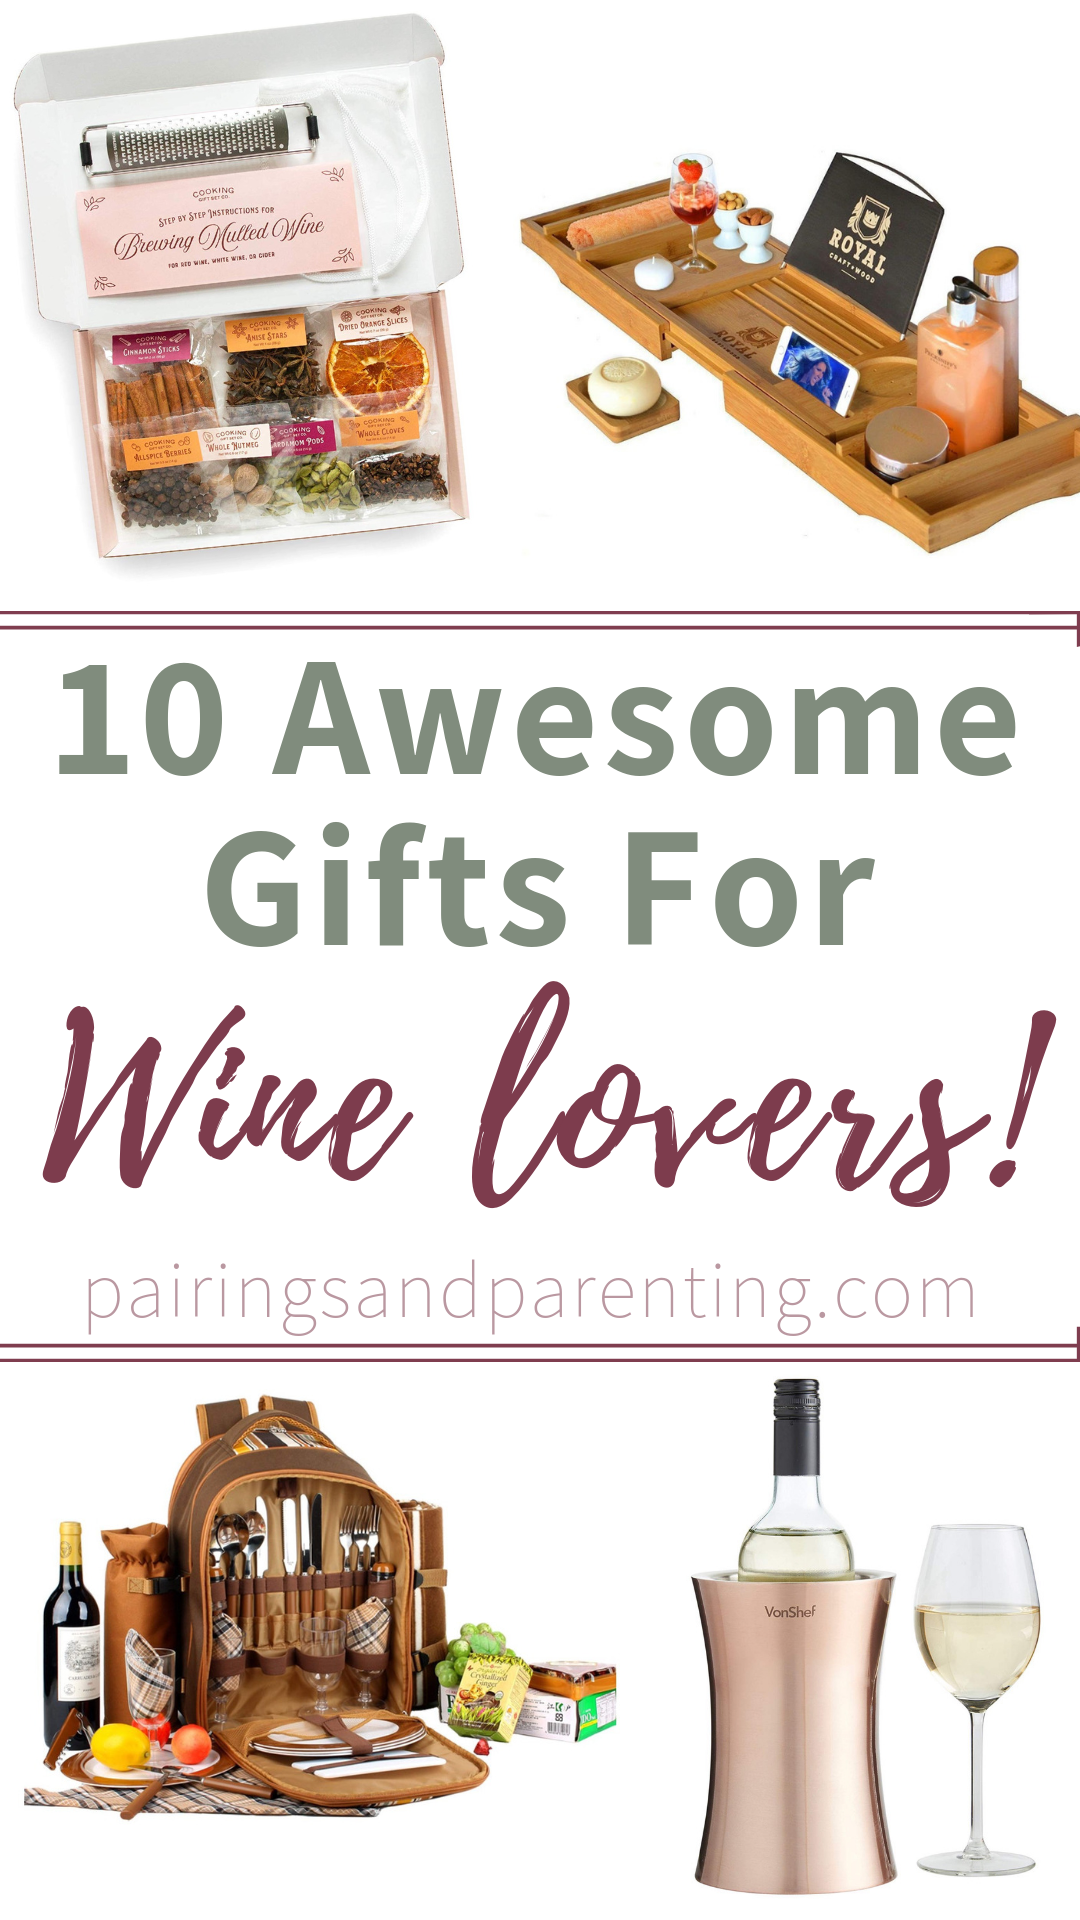 10 Awesome Gifts For Wine Lovers!